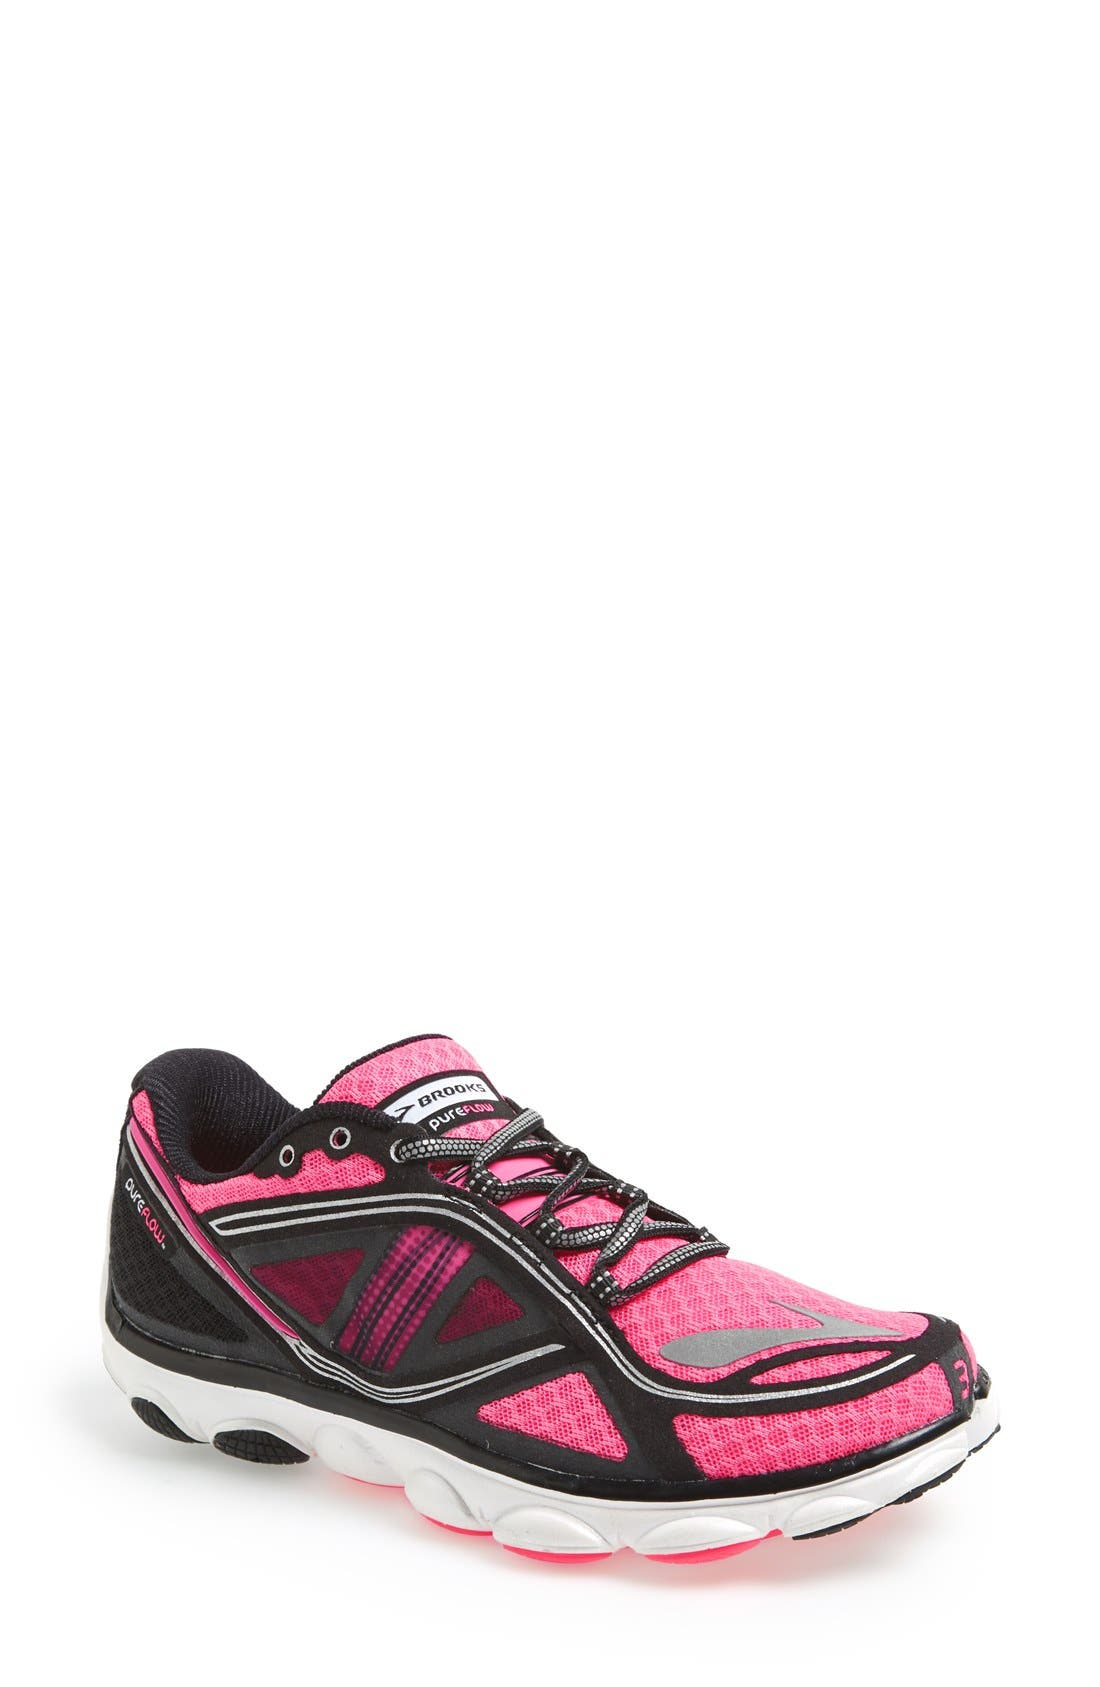 Alternate Image 1 Selected - Brooks 'Pureflow 3' Running Shoe (Women) (Regular Retail Price: $104.95)